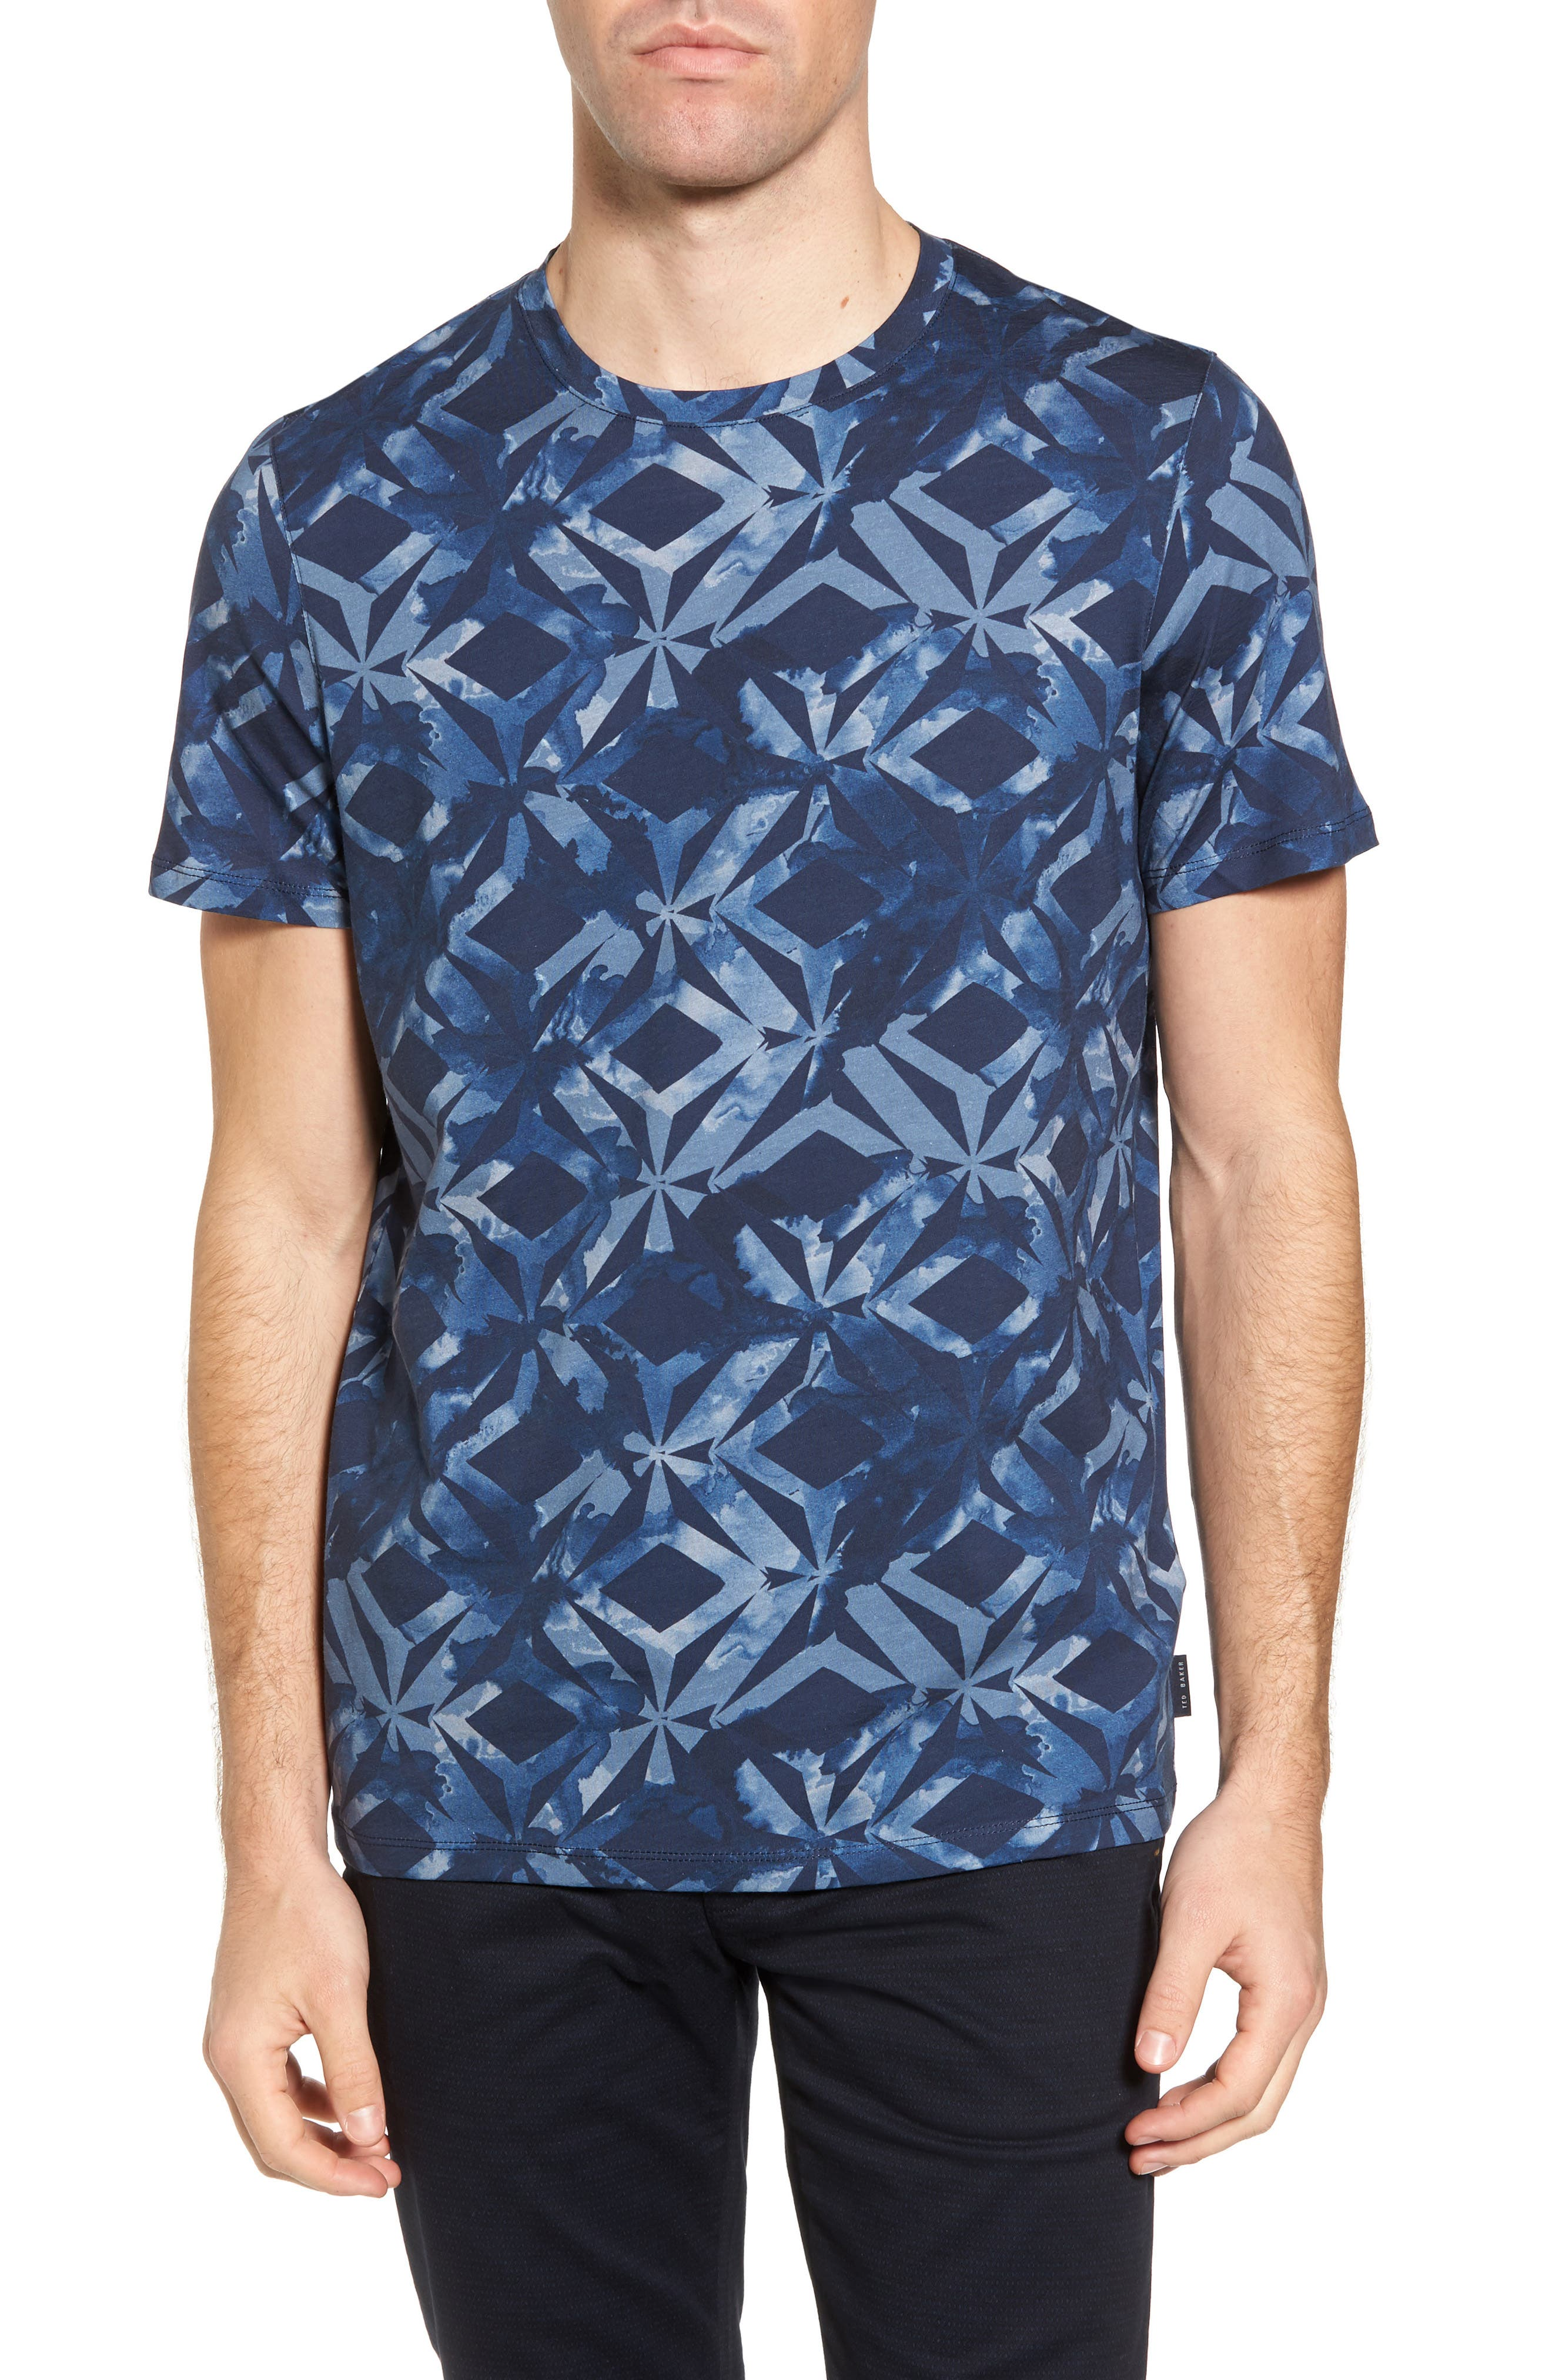 Woof Batik Print T-Shirt,                             Main thumbnail 1, color,                             Dark Blue